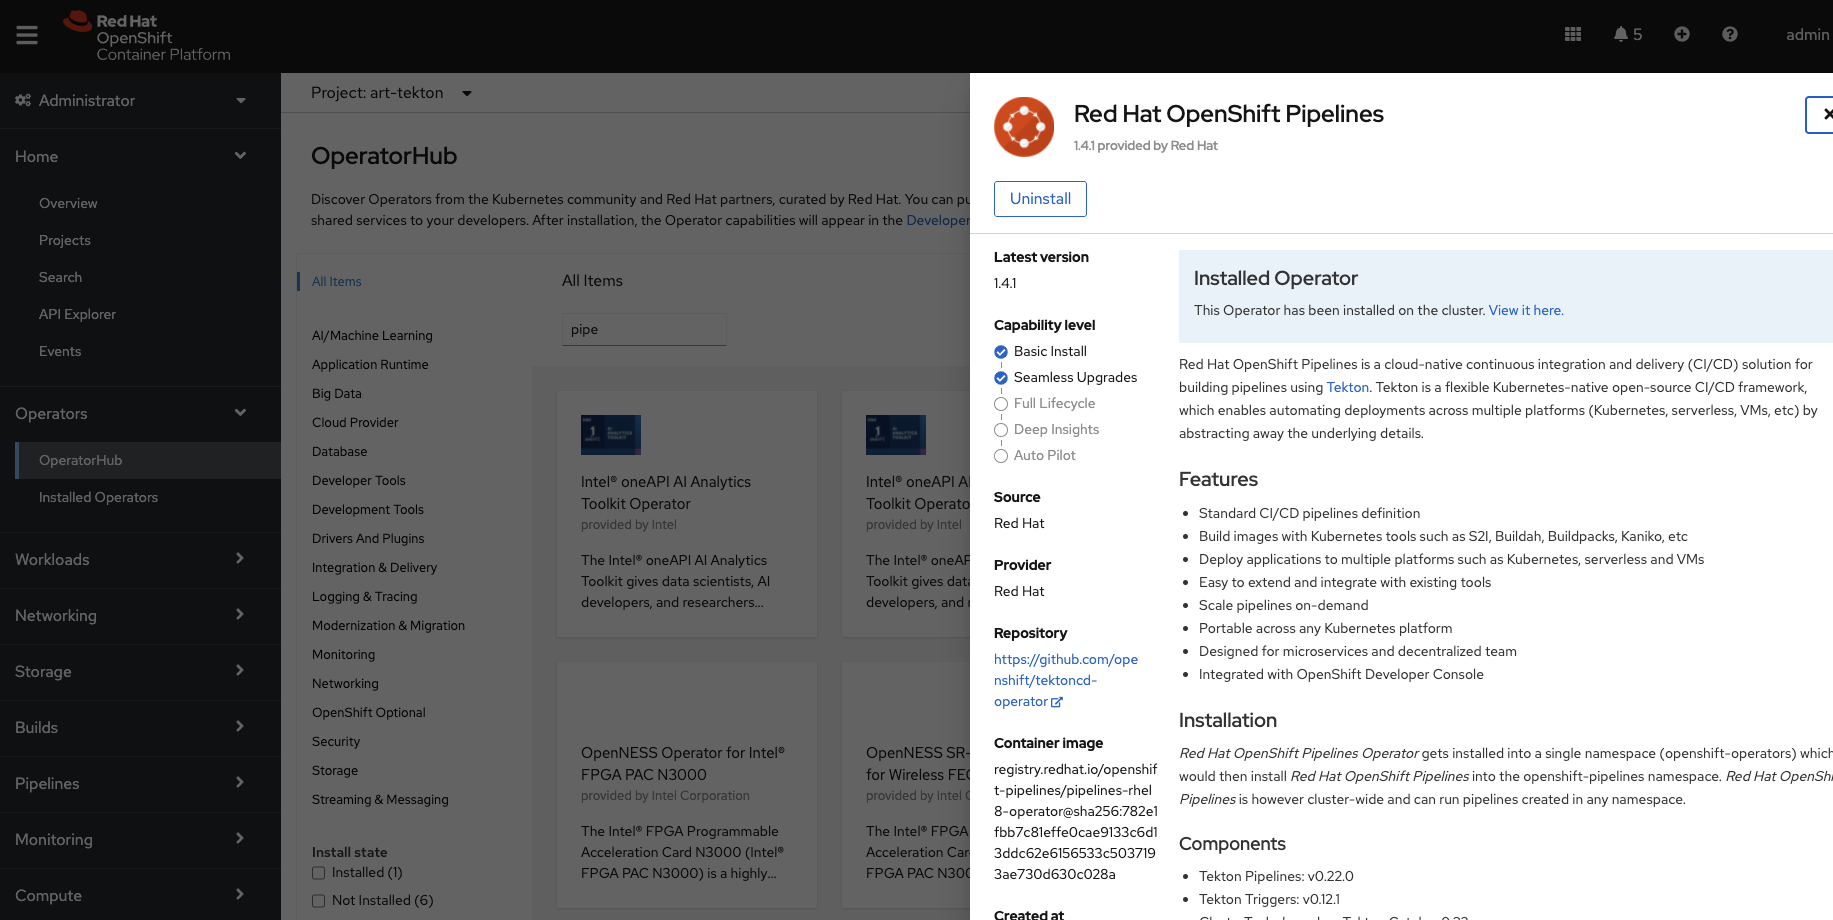 Image 1: Using the OpenShift UI to install OpenShift Pipelines operator